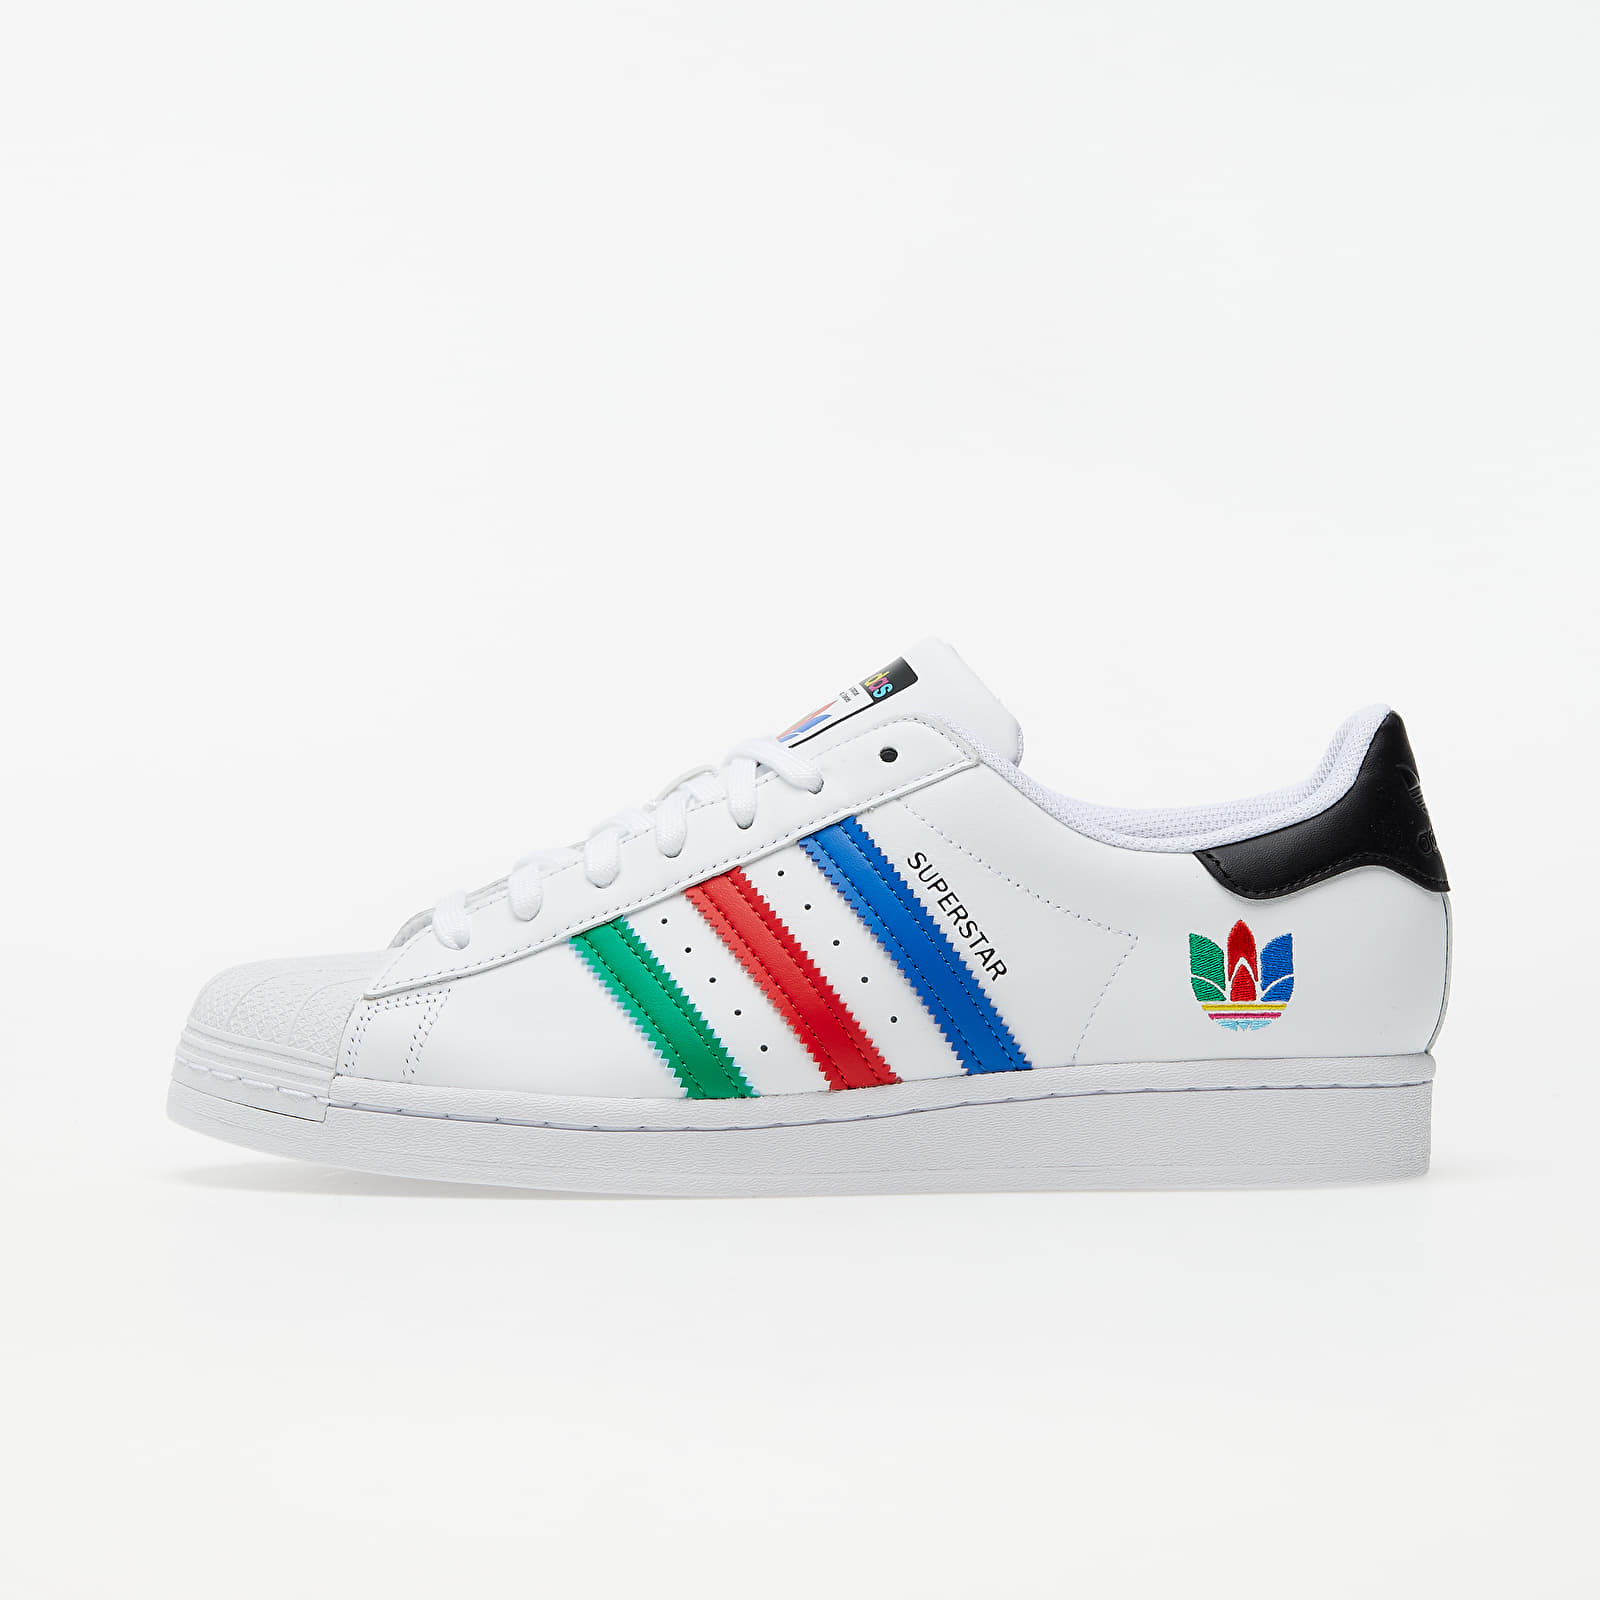 adidas Superstar Ftw White/ Green/ Core Black FU9521